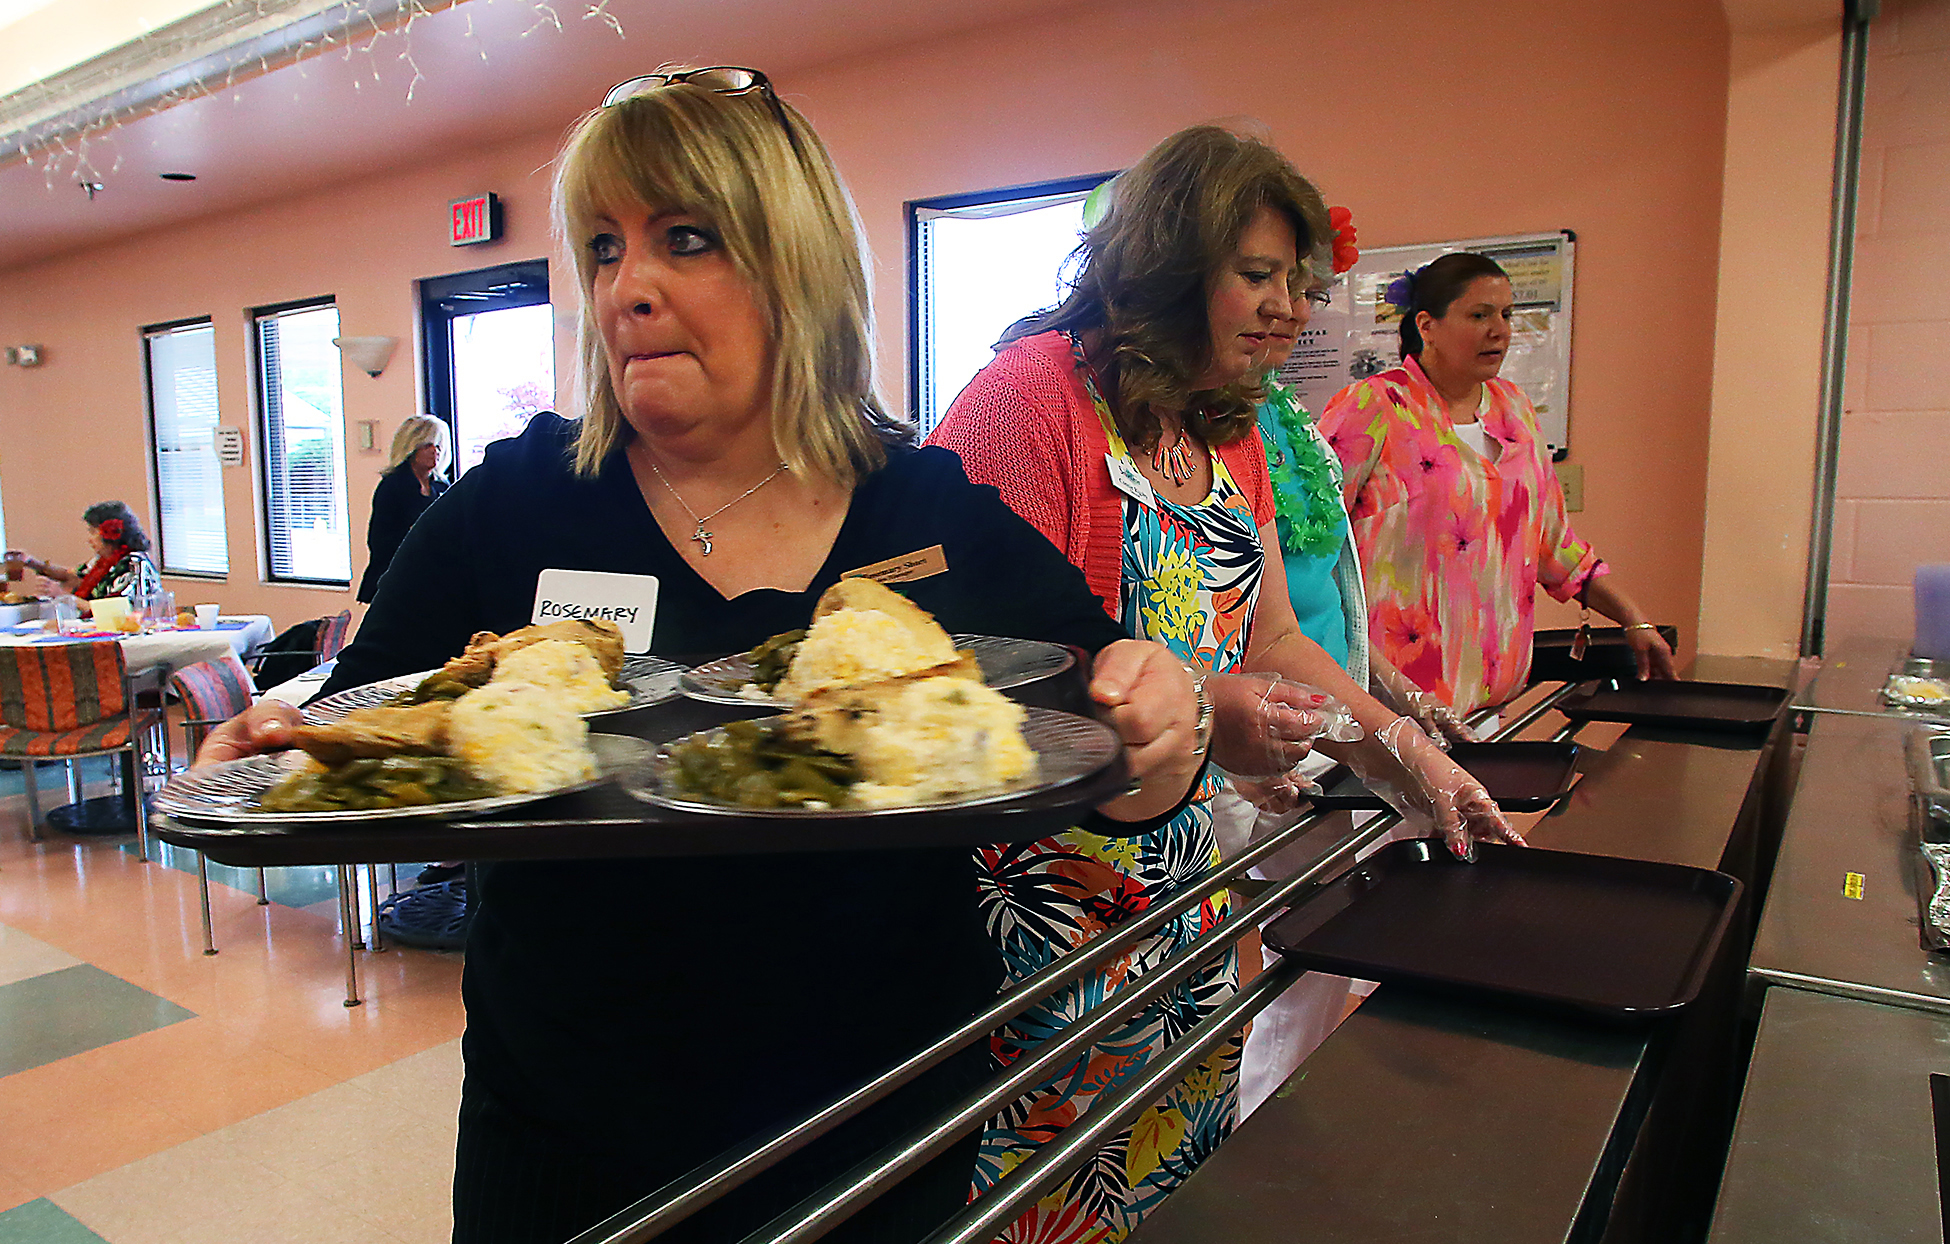 It was a festive atmosphere at the St. Clair St. Senior Center